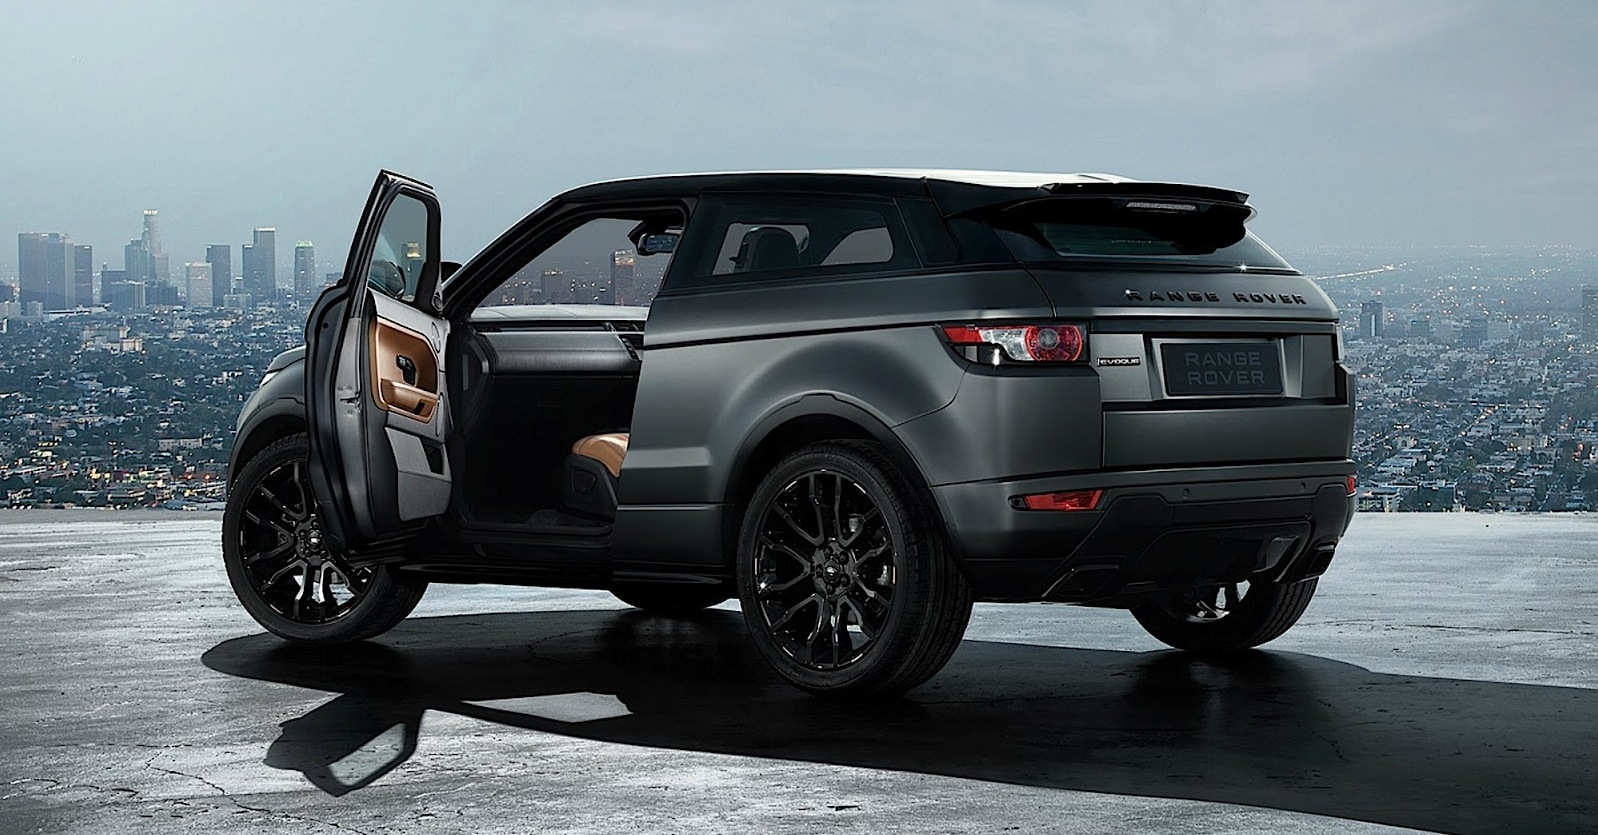 sell your car in 30min range rover evoque in dubai sell your. Black Bedroom Furniture Sets. Home Design Ideas